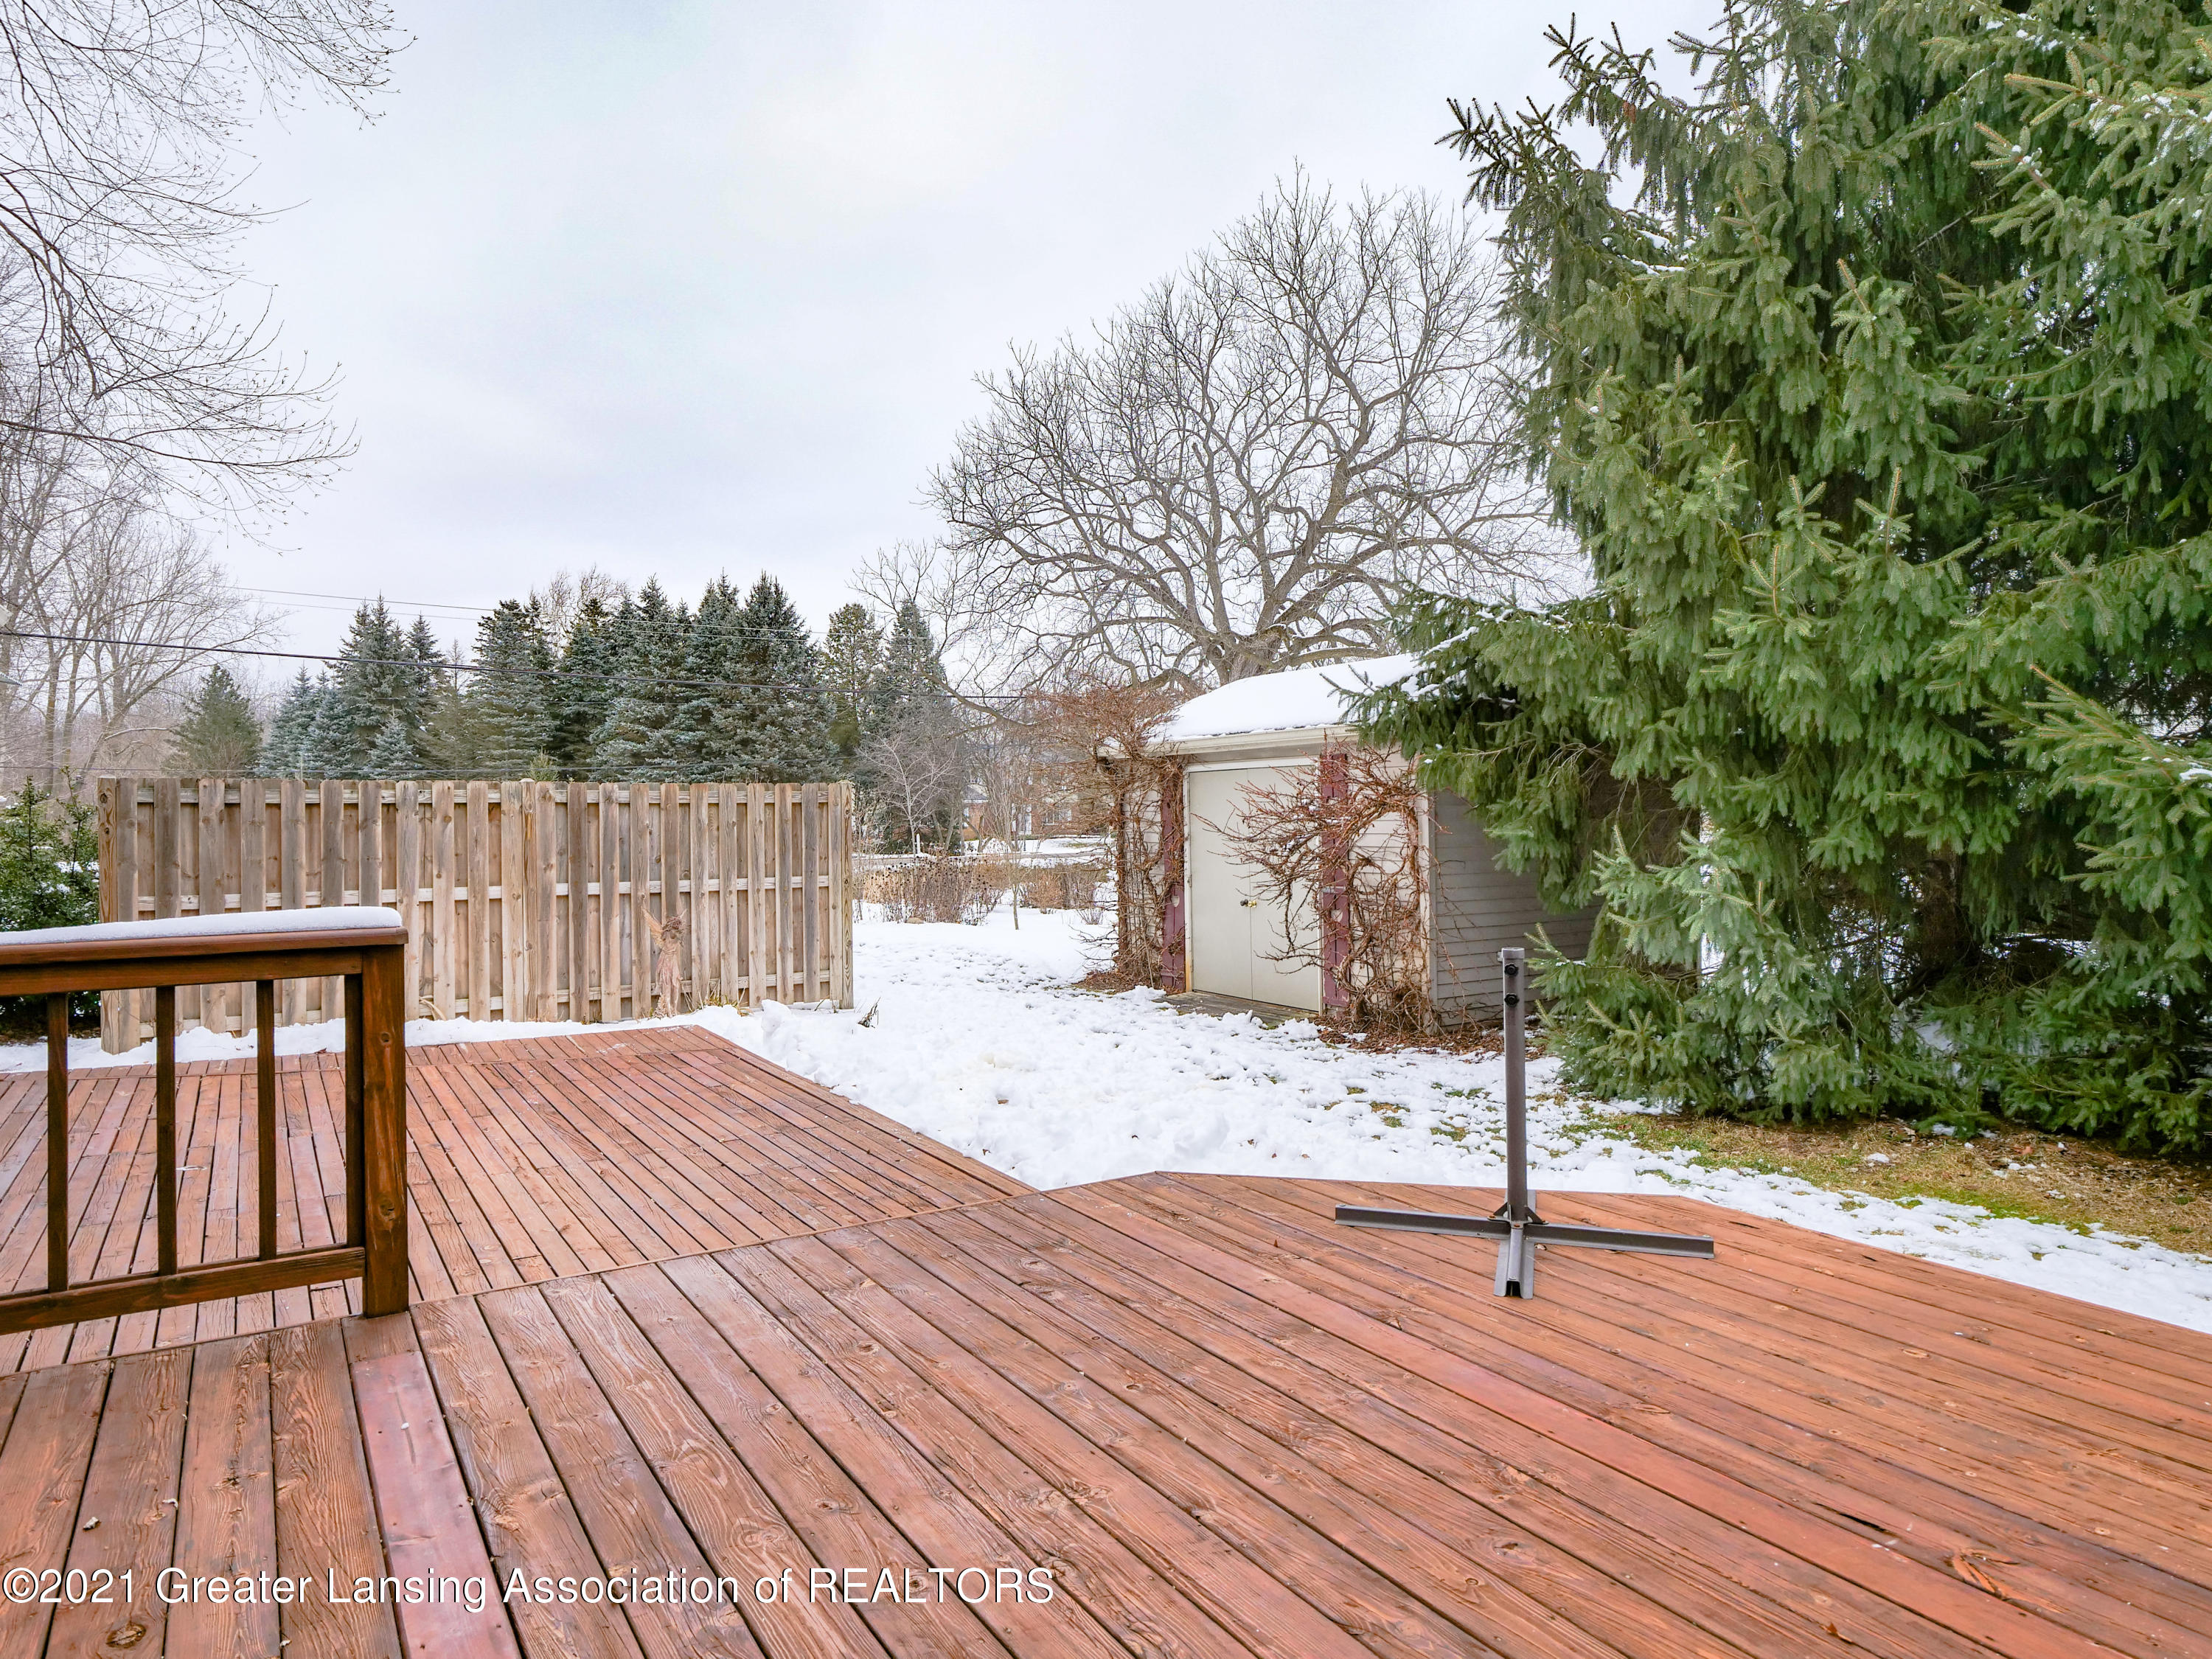 12980 Kingsgate Way - 12980_Kinsgate_Way-8 - 29